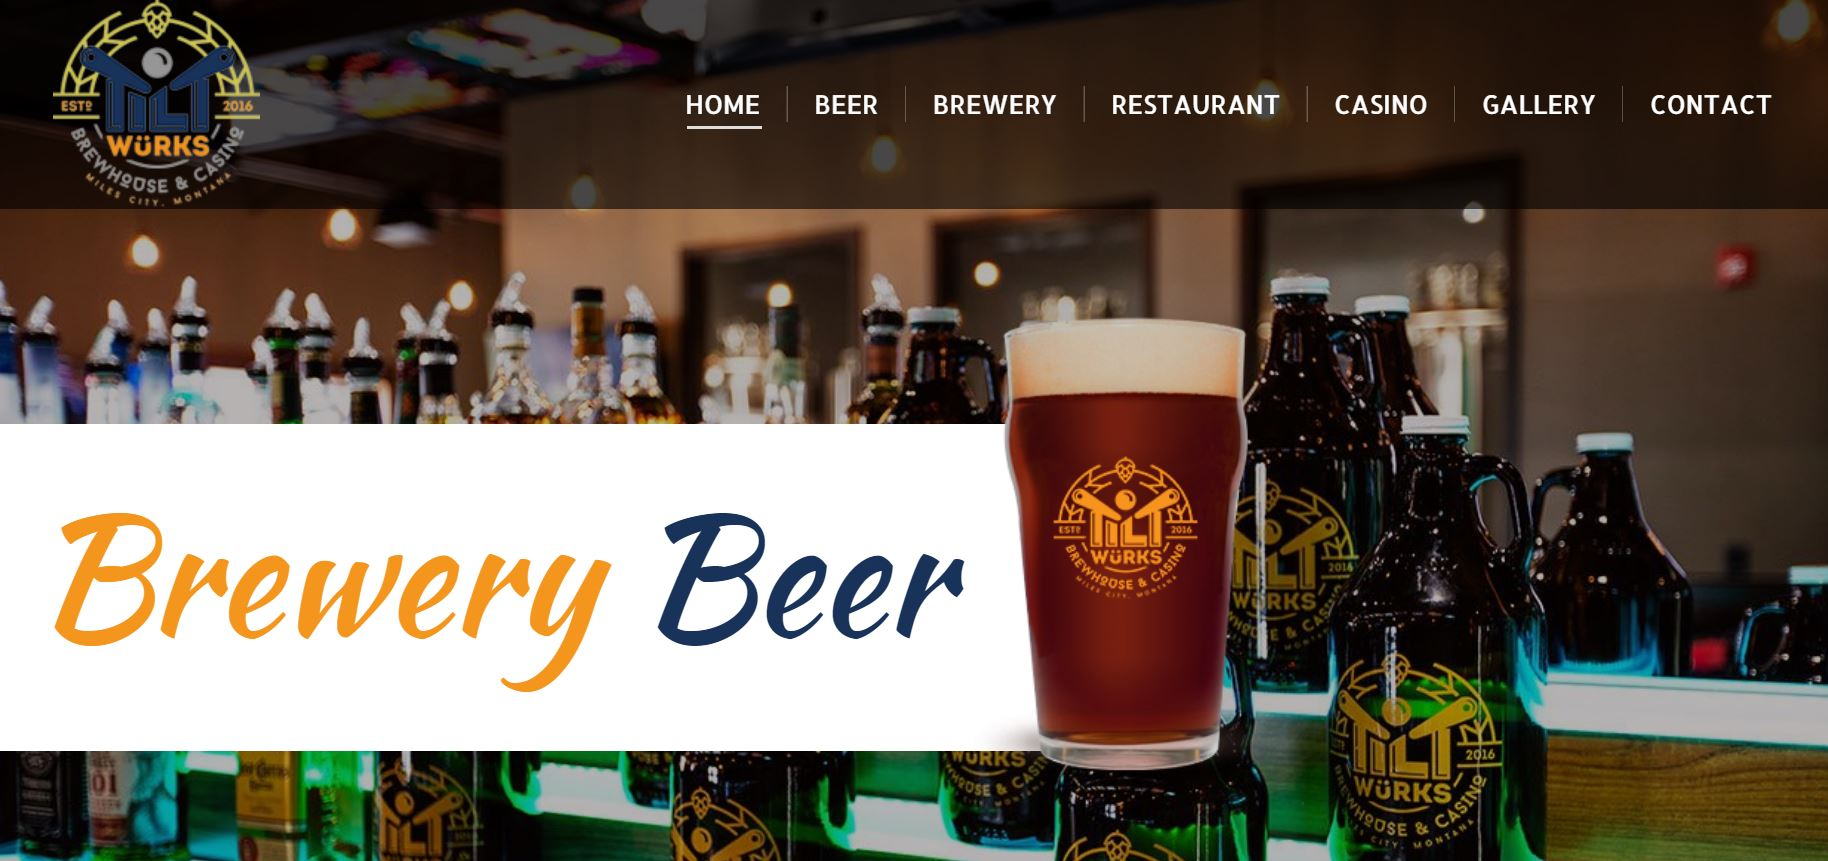 Tilt Wurks Brewhouse and Casino website design by SkyPoint Studios